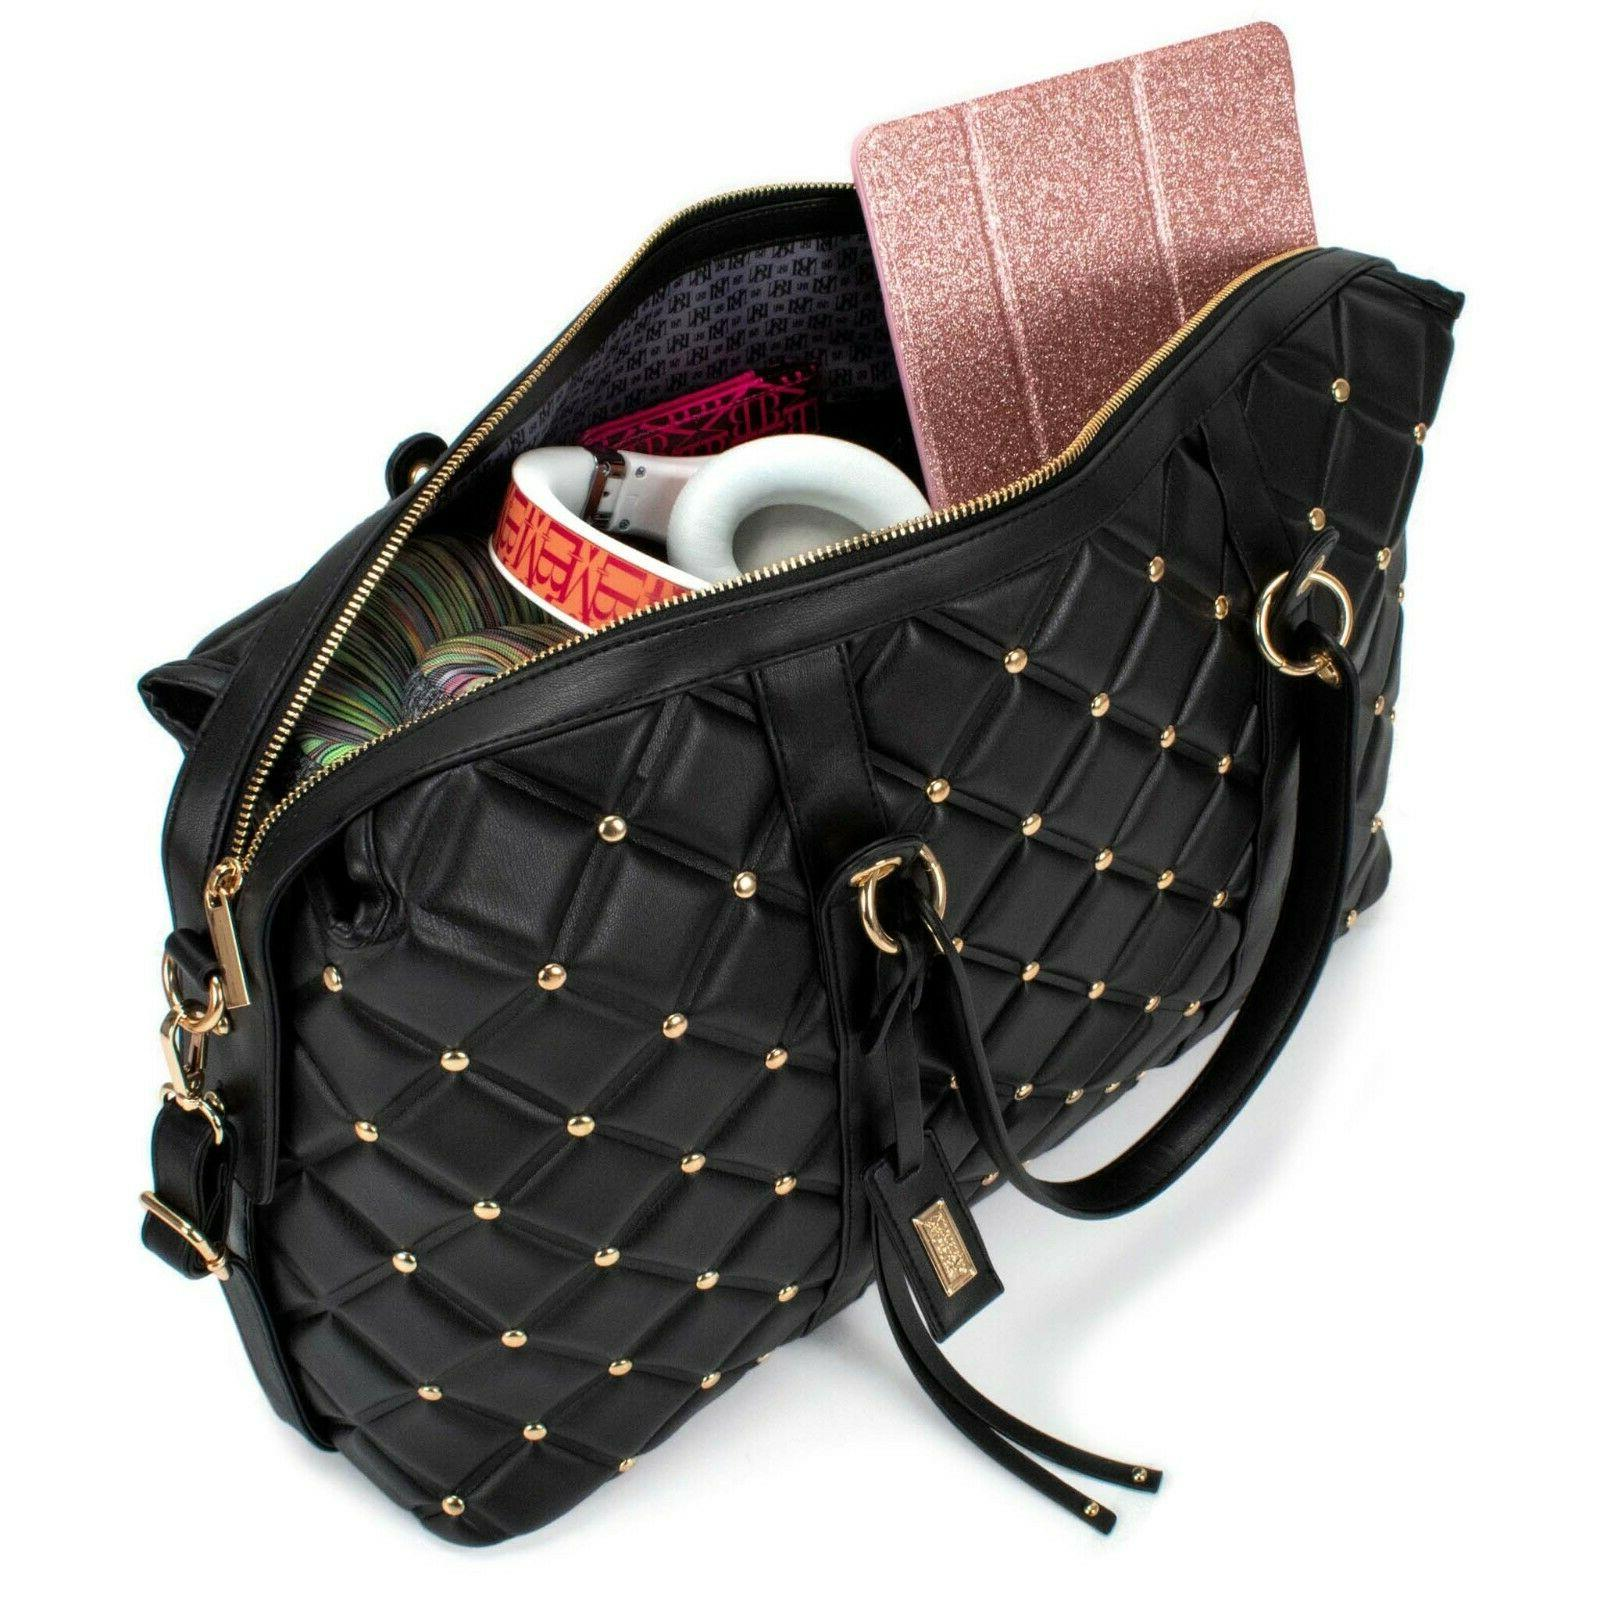 BADGLEY MISCHKA Quilted Travel Tote Bag Packable Travel